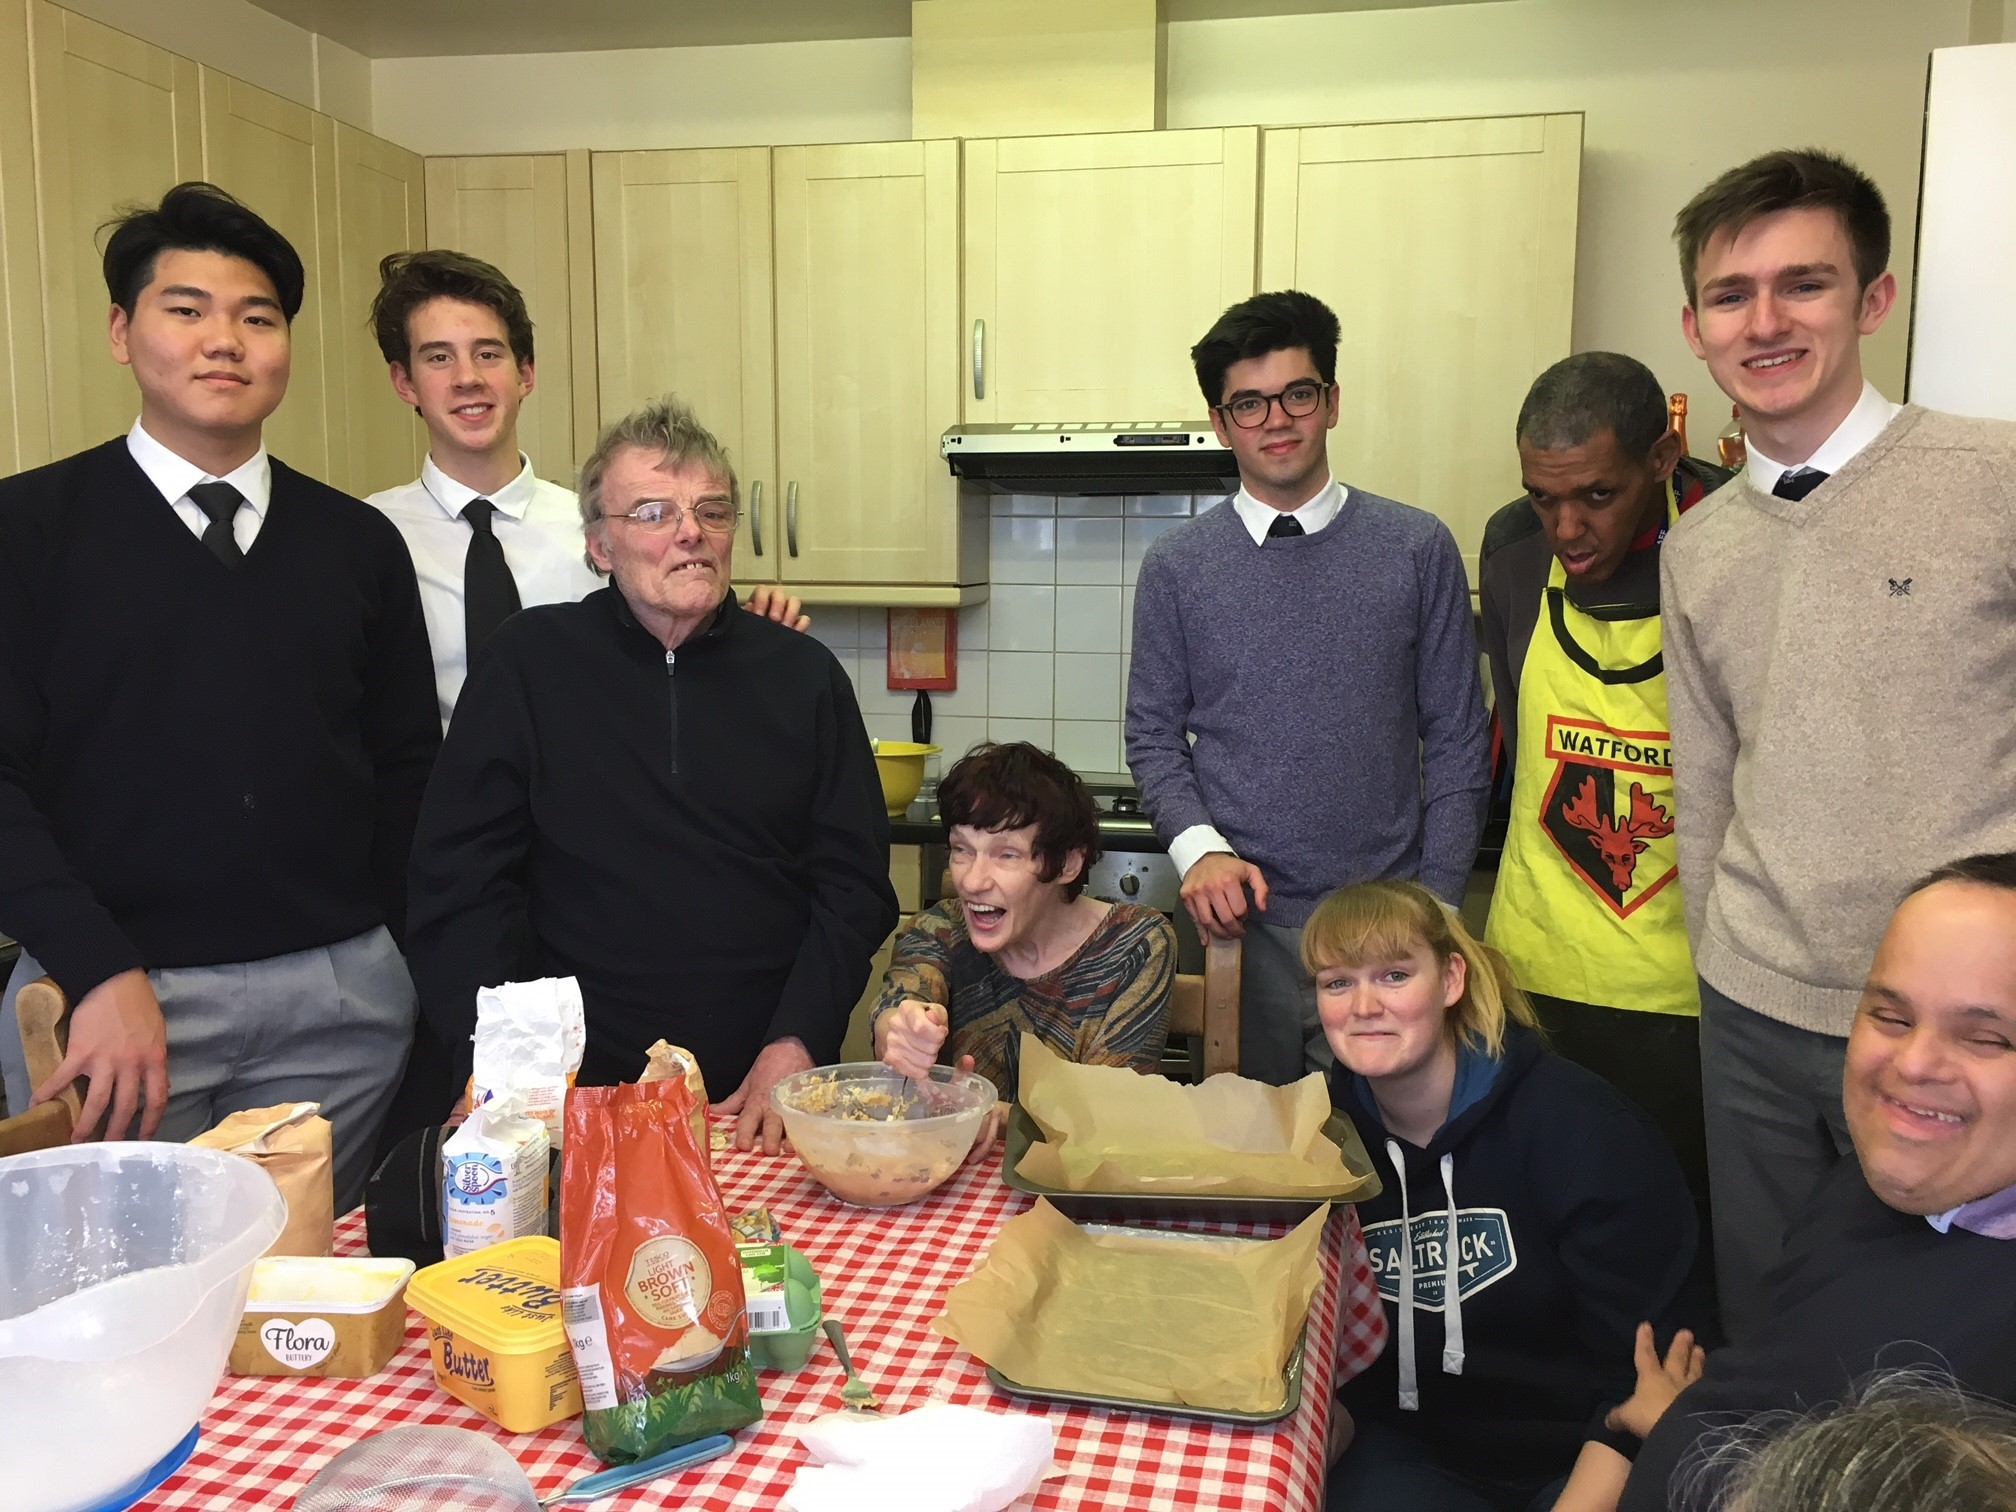 Pupils from Harrow School and residents of Certitude during the cooking project